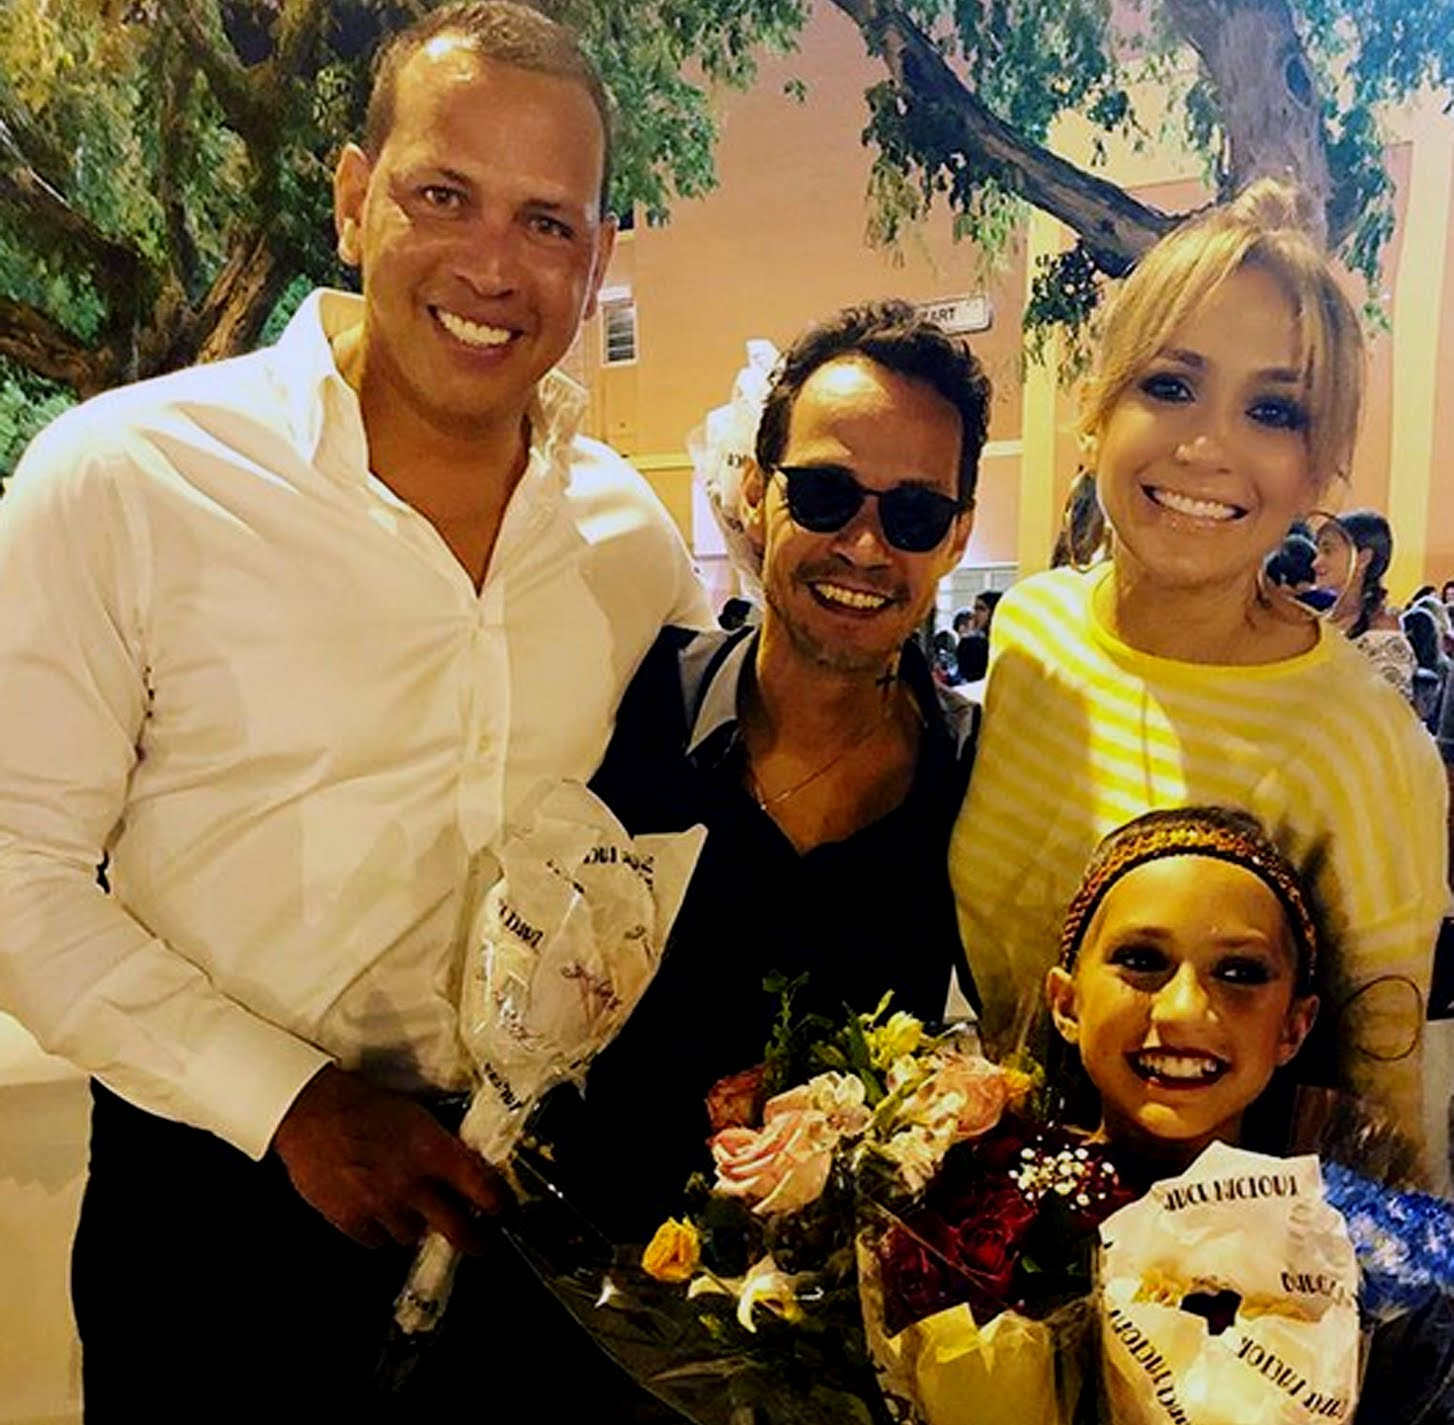 Alex Rodriguez filmed goofing around with fiancee Jennifer Lopez and her ex-husband Marc Anthony